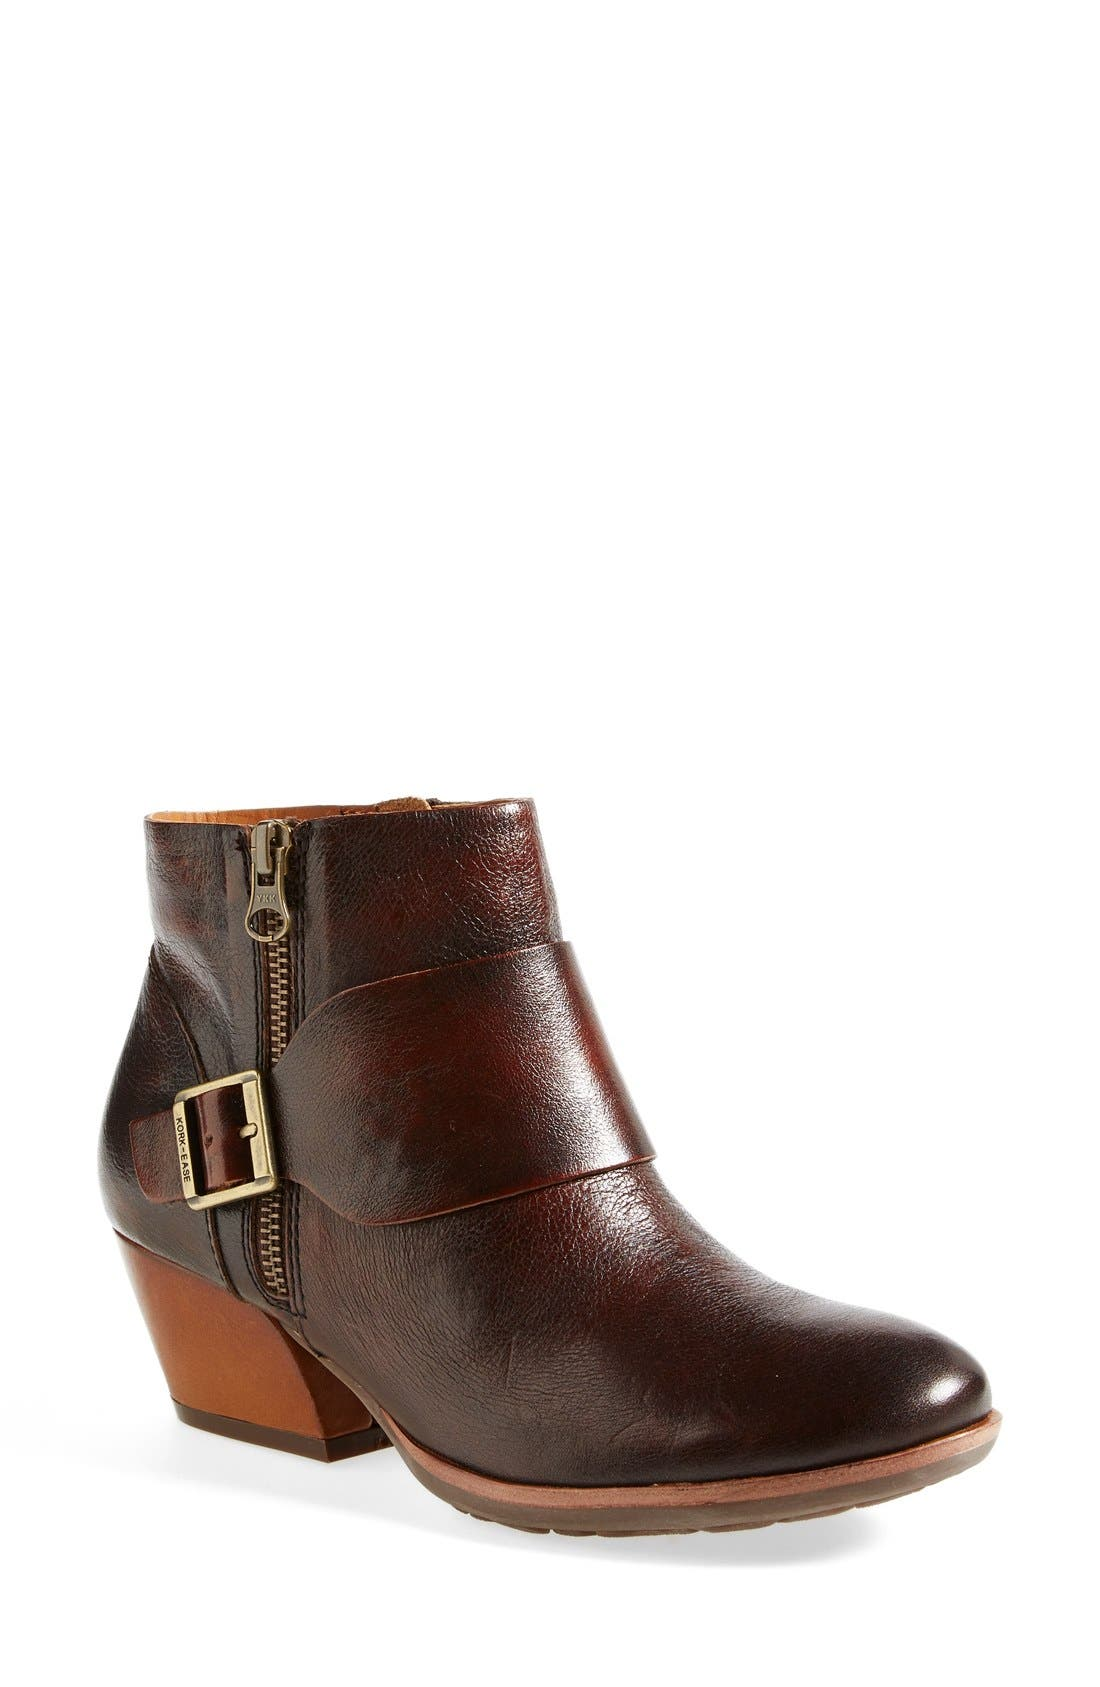 Alternate Image 1 Selected - Kork-Ease™ 'Isa' Side Zip Boot (Women) (Online Only)